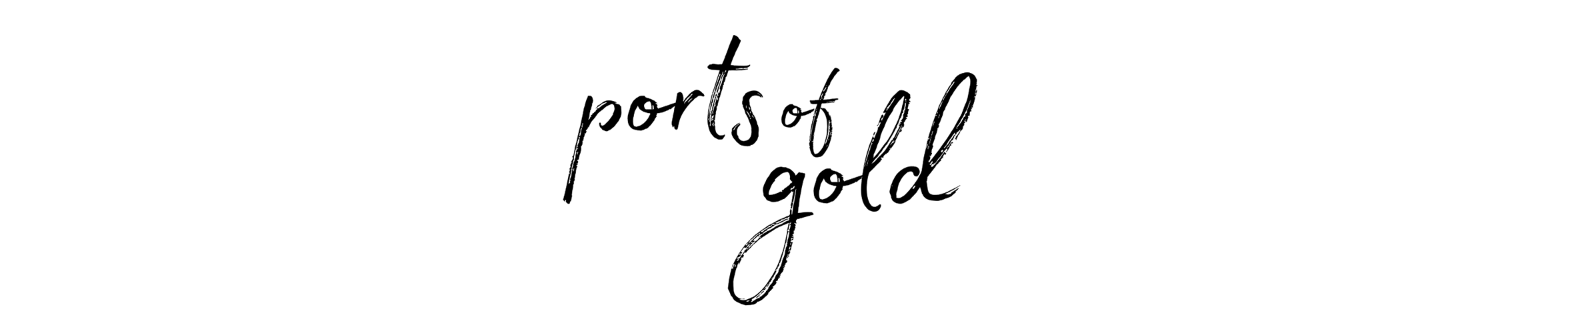 ports of gold